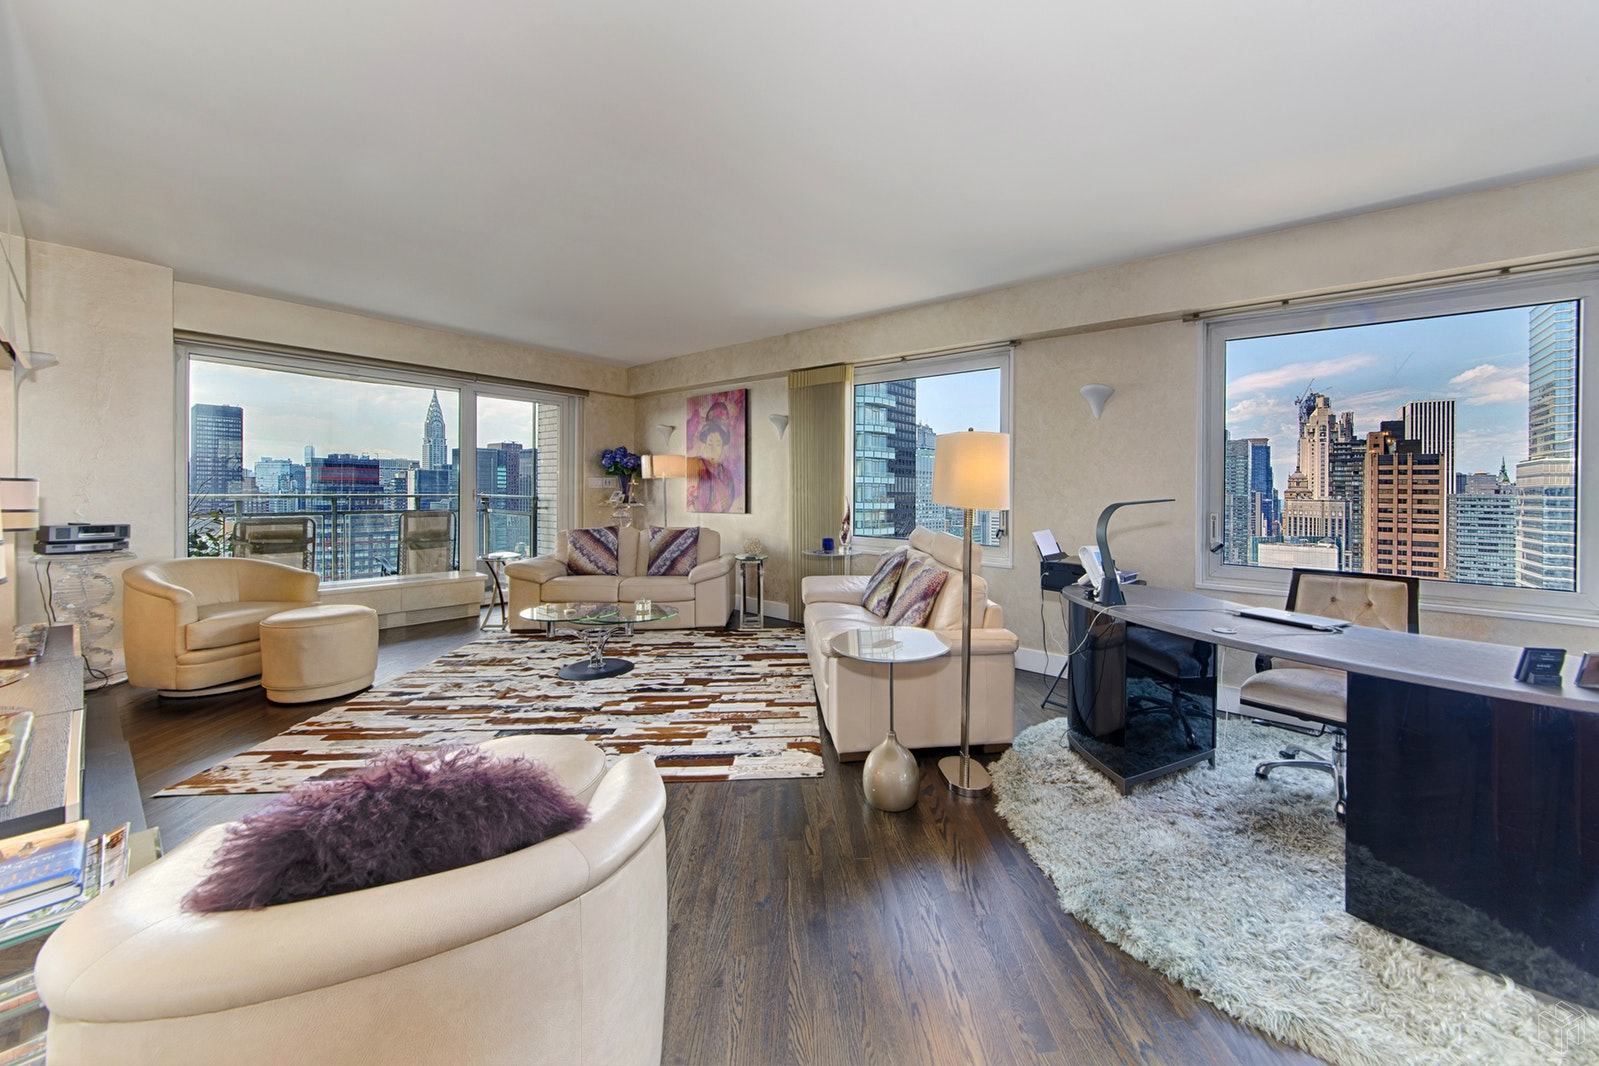 303 East 57th Street 43b, Midtown East, NYC, 10022, $1,250,000, Sold Property, Halstead Real Estate, Photo 1